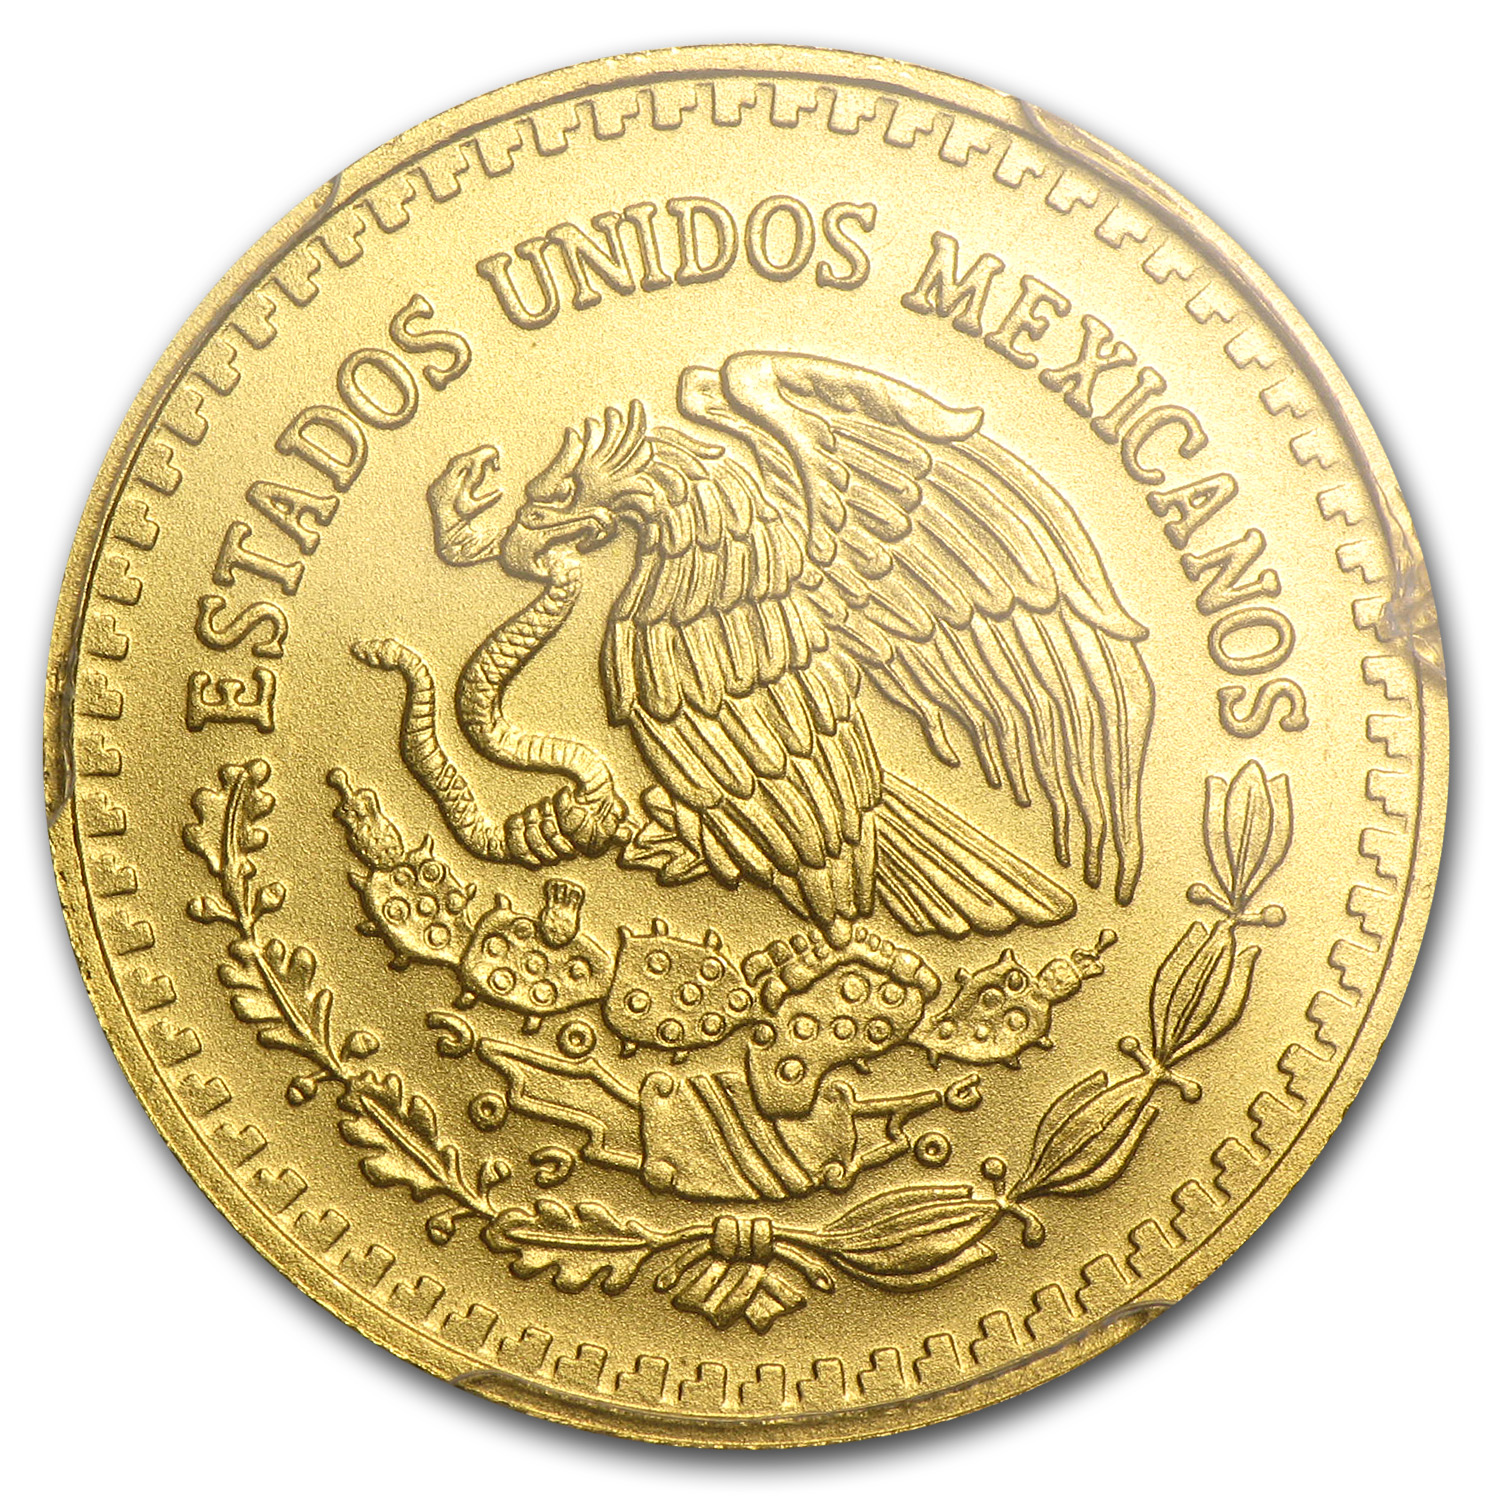 2014 1/4 oz Gold Mexican Libertad MS-70 PCGS